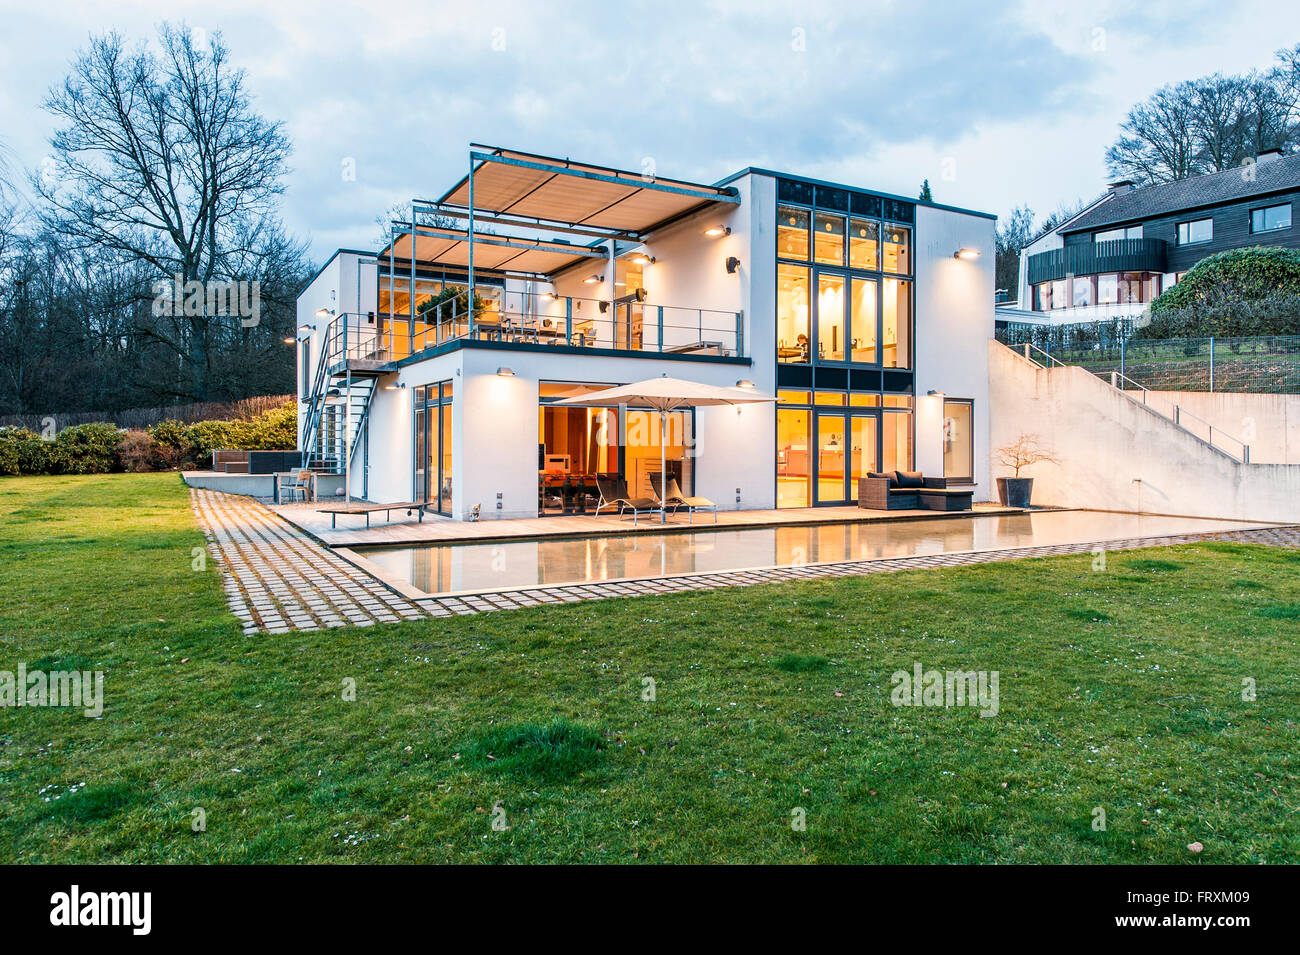 Bauhaus Villa Bauhaus Villa At Dusk Sauerland Germany Stock Photo 100775369